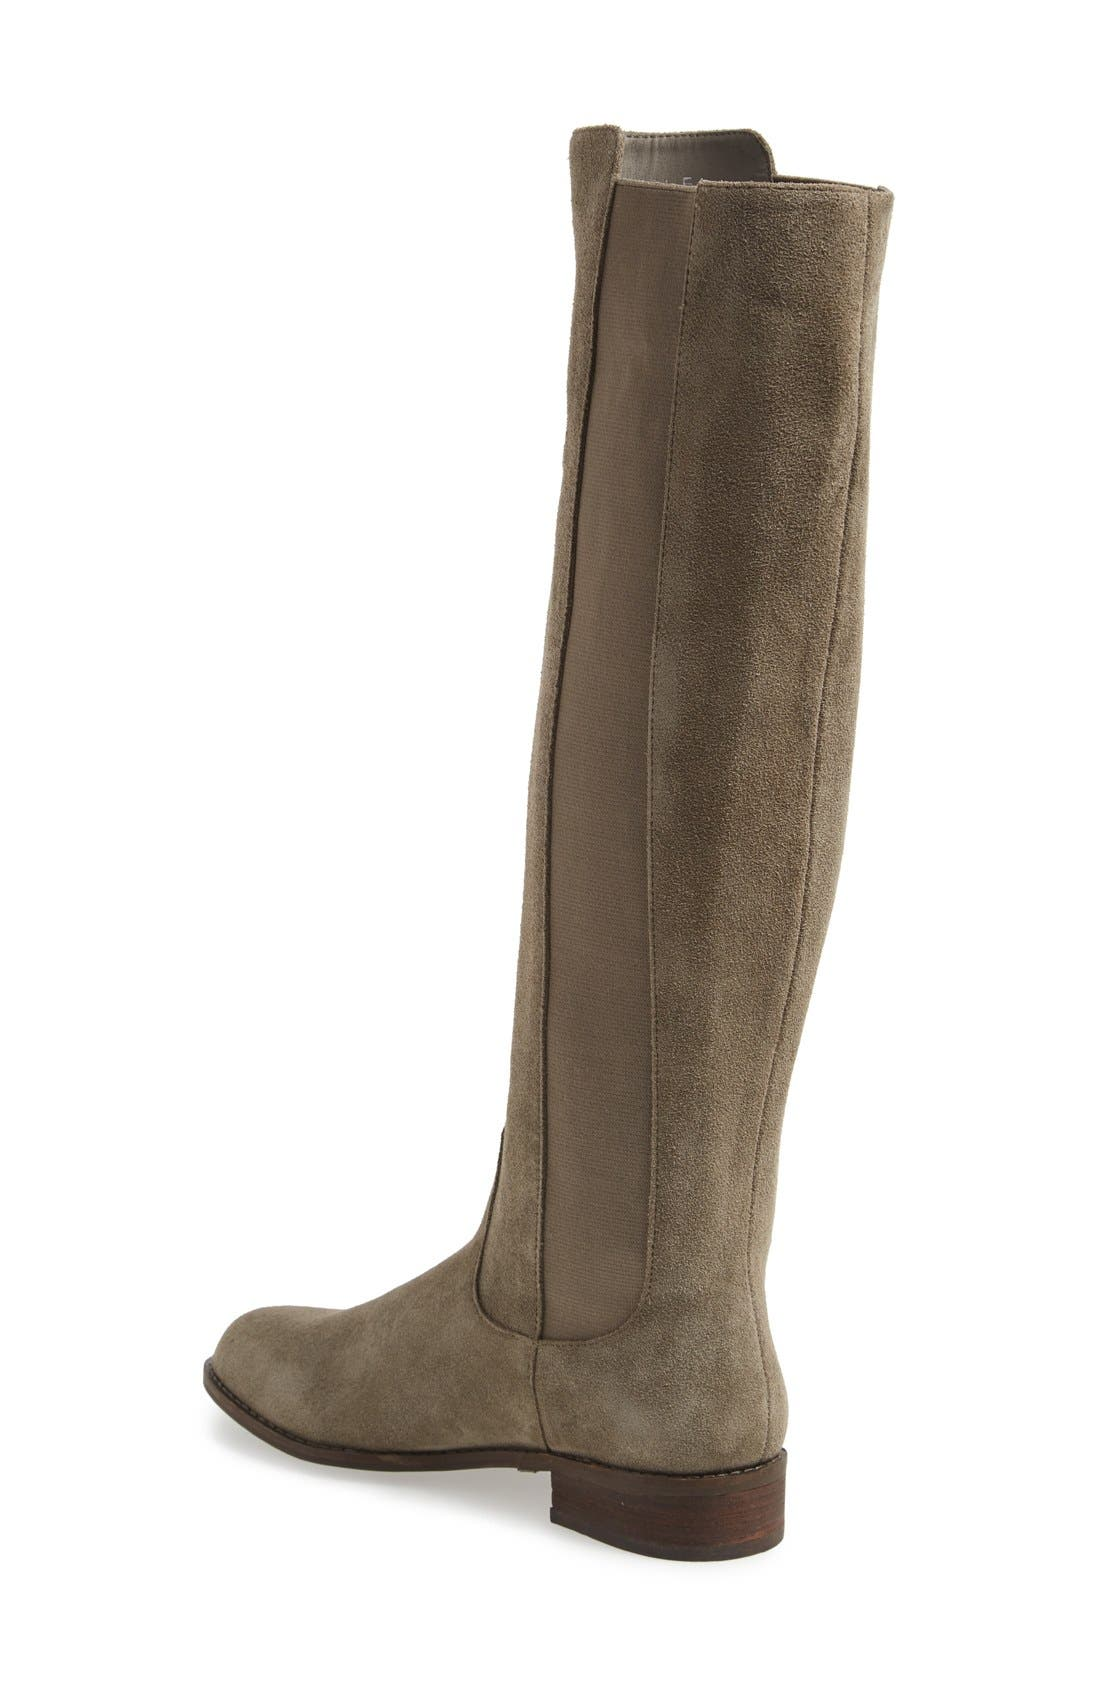 Alternate Image 2  - Very Volatile 'Timber' Suede Knee High Boot (Women)